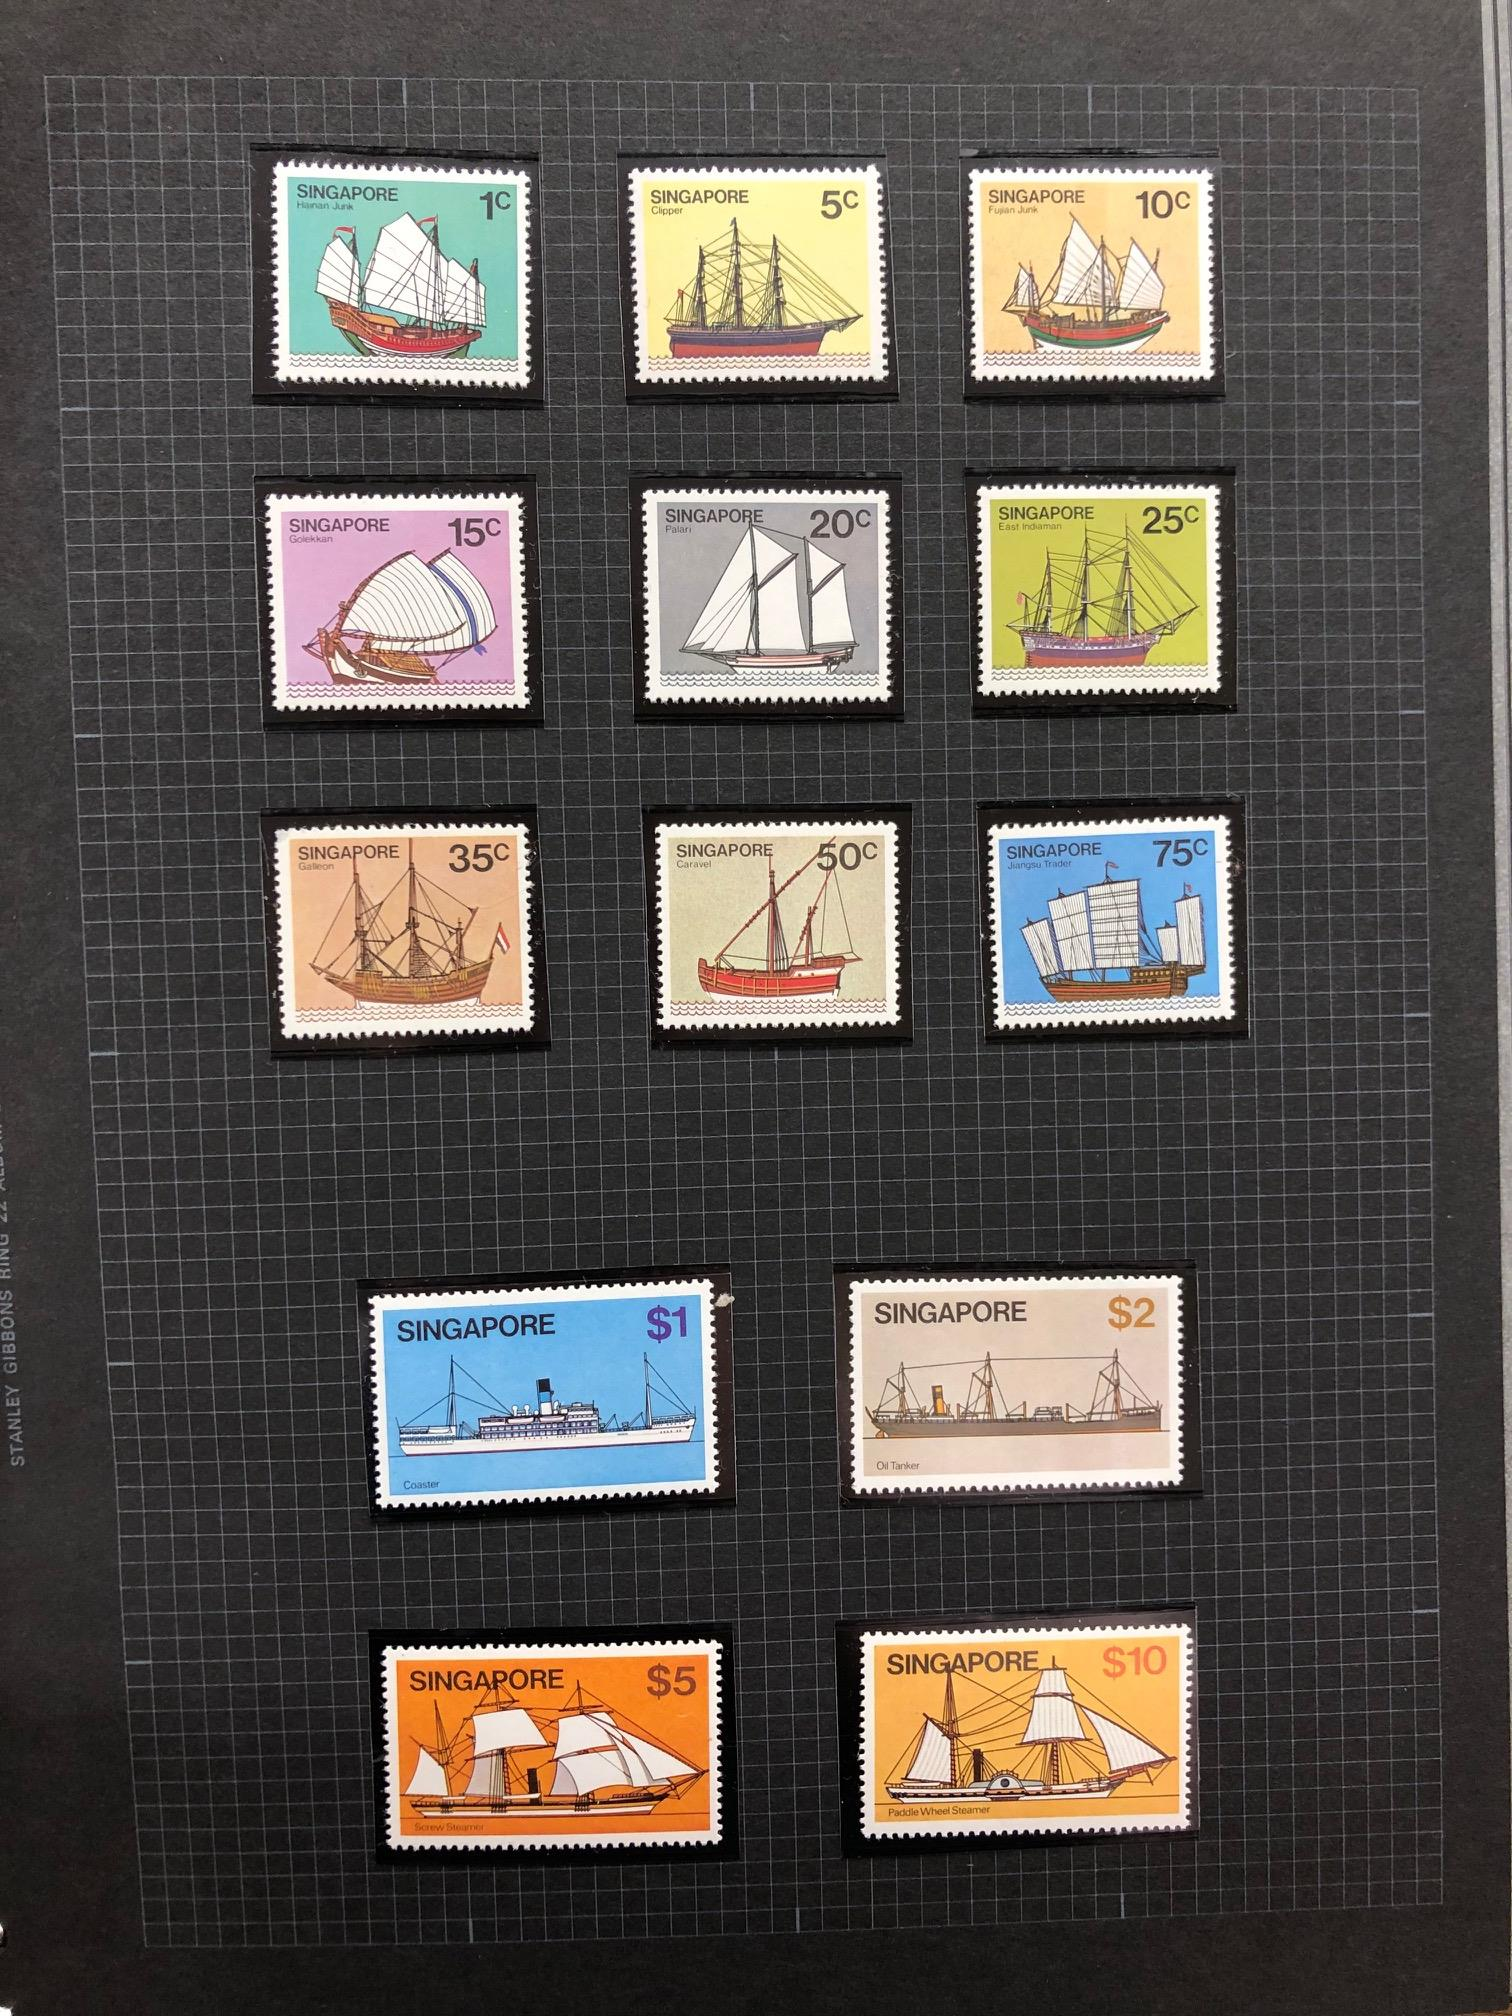 SINGAPORE 1980 - 1993 um collection in album with what appears to be a complete run of commem sets